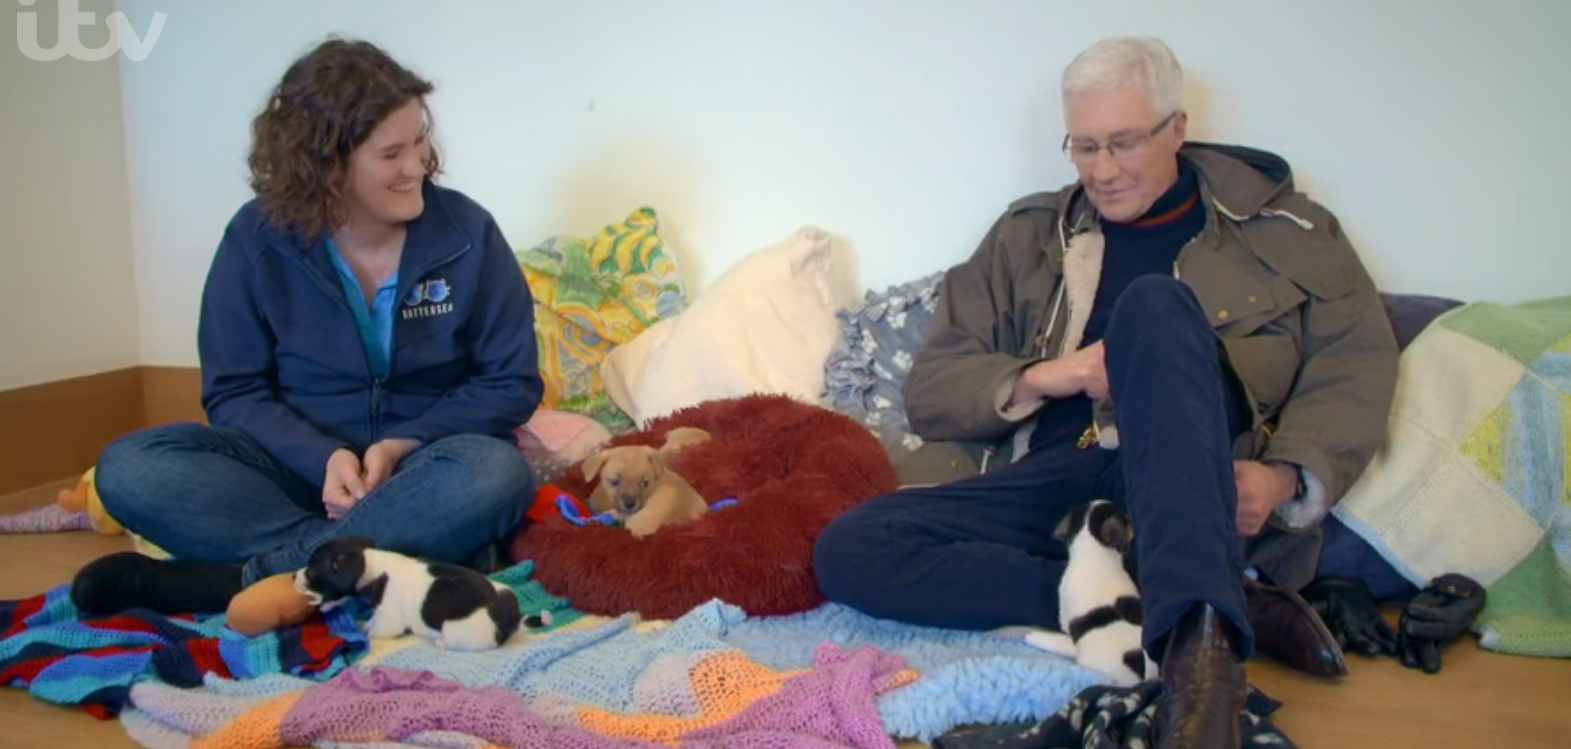 Paul O'Grady on For the Love of Dogs